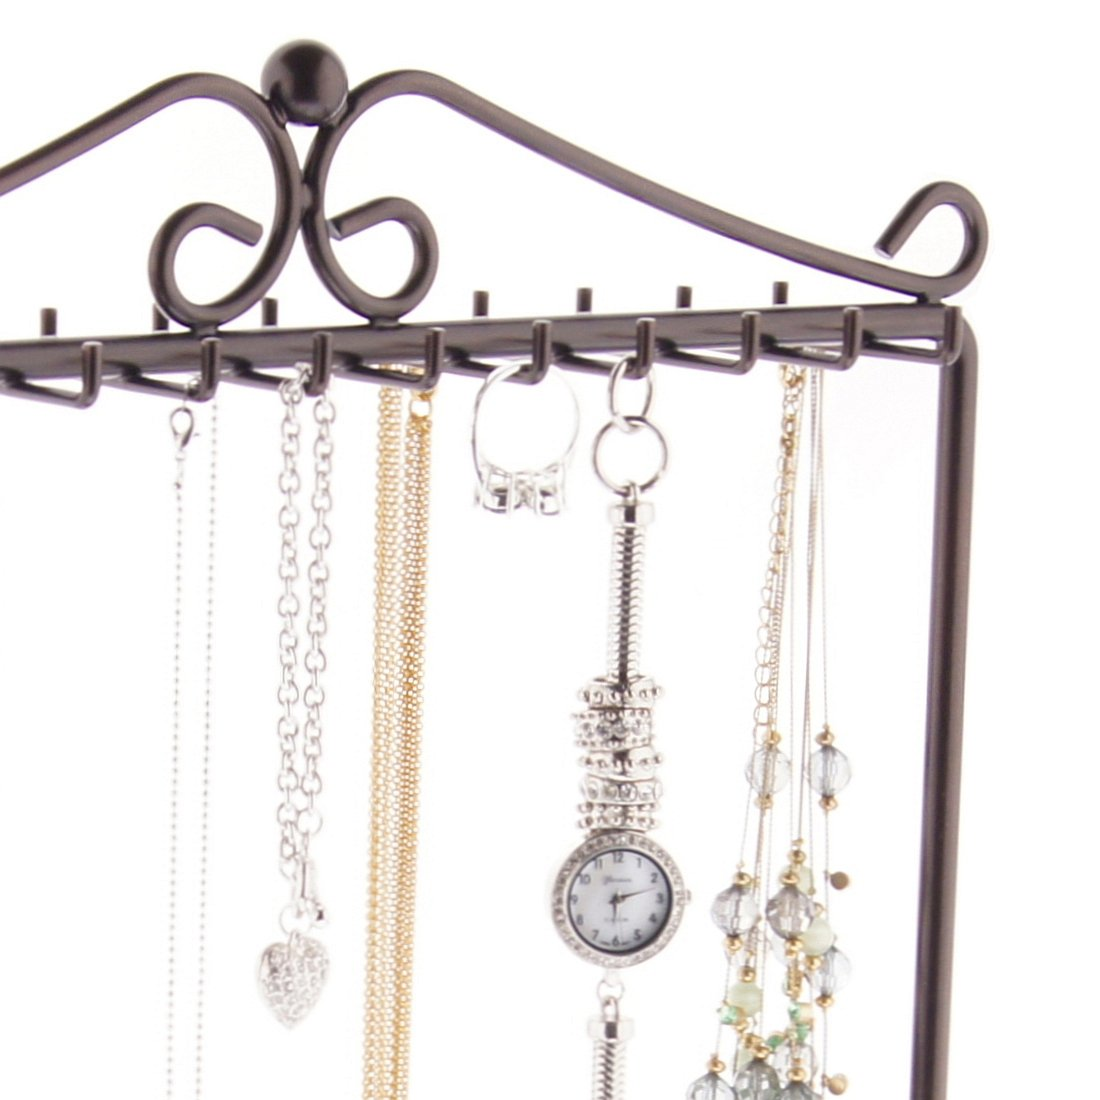 Angelynn's Necklace Holder Organizer Jewelry Tree Stand Storage Rack, Calla Rubbed Bronze by Angelynn's (Image #4)